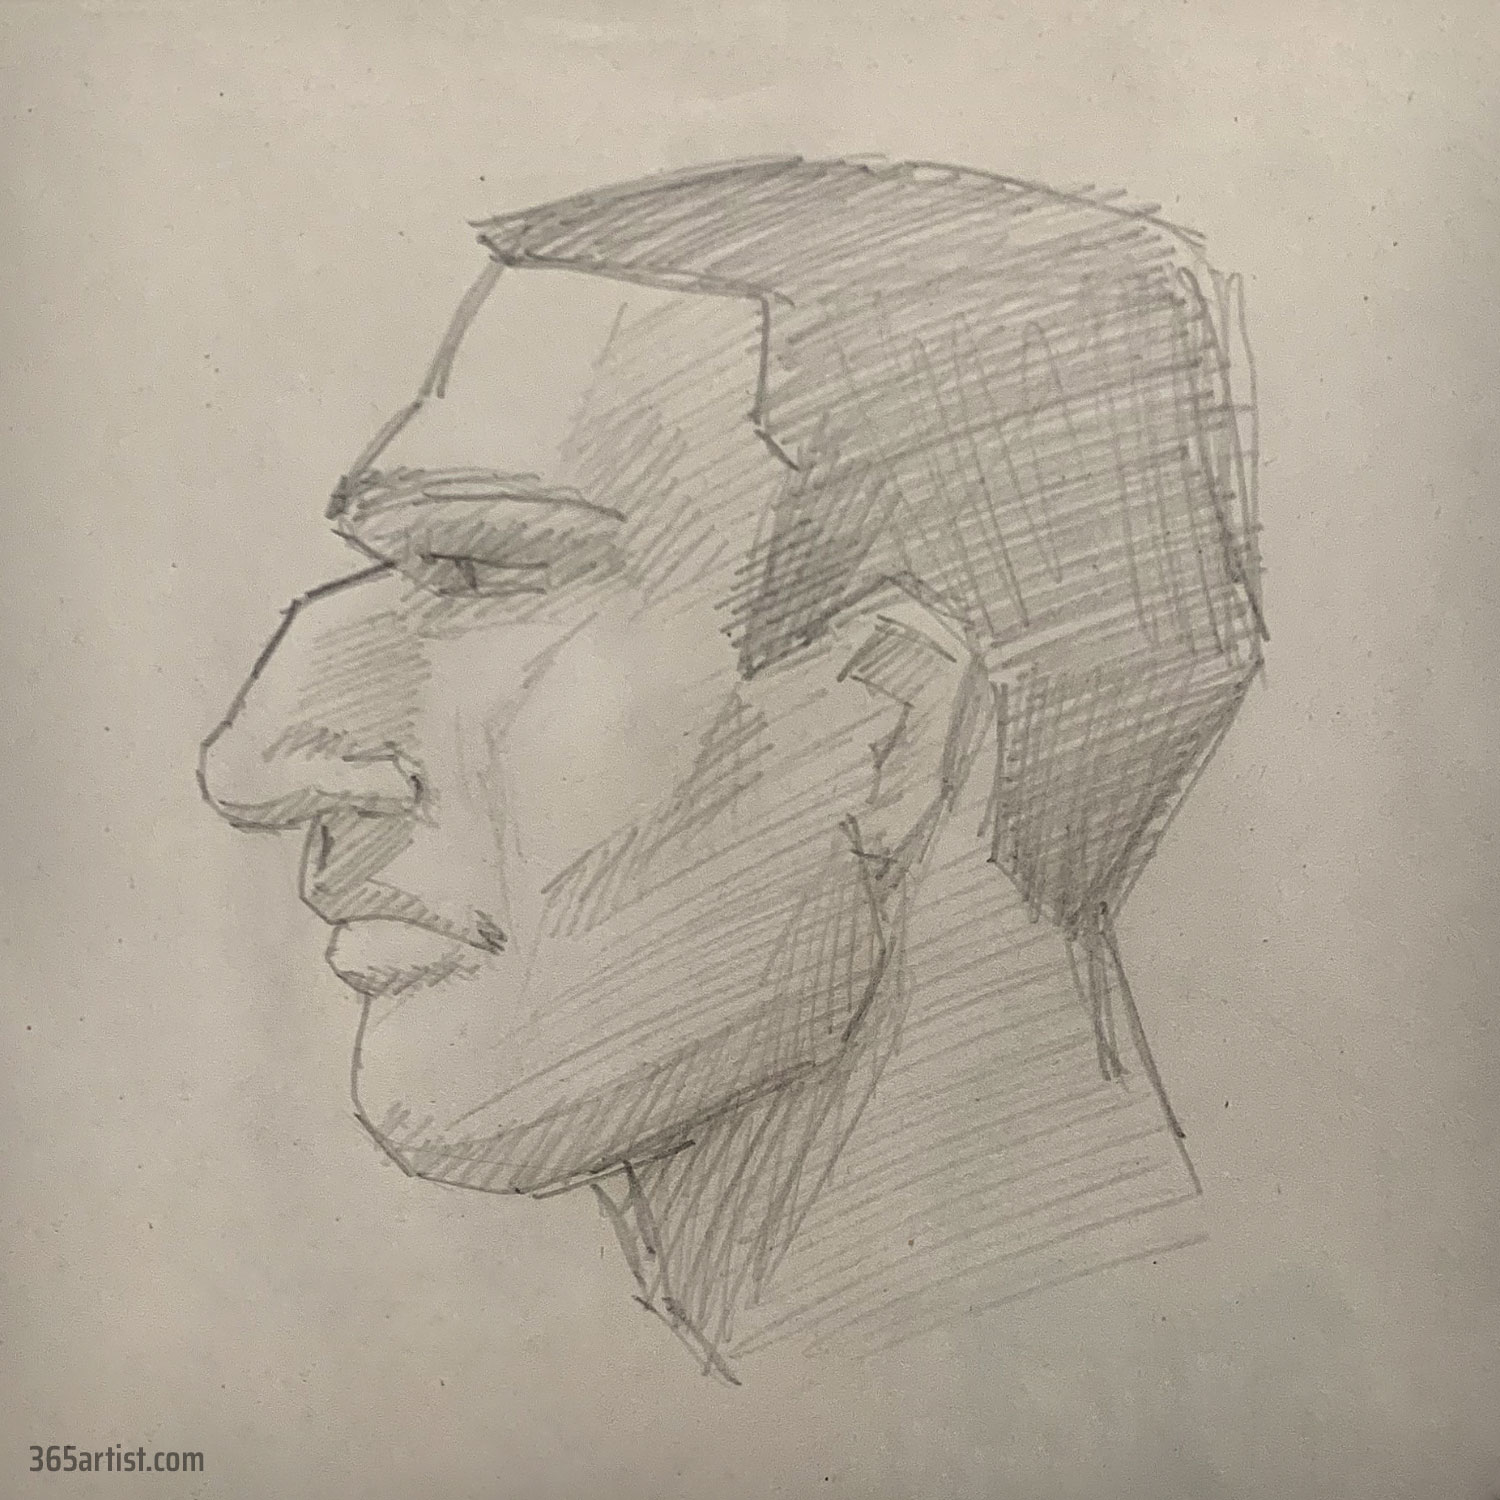 portrait drawing of a gladiator